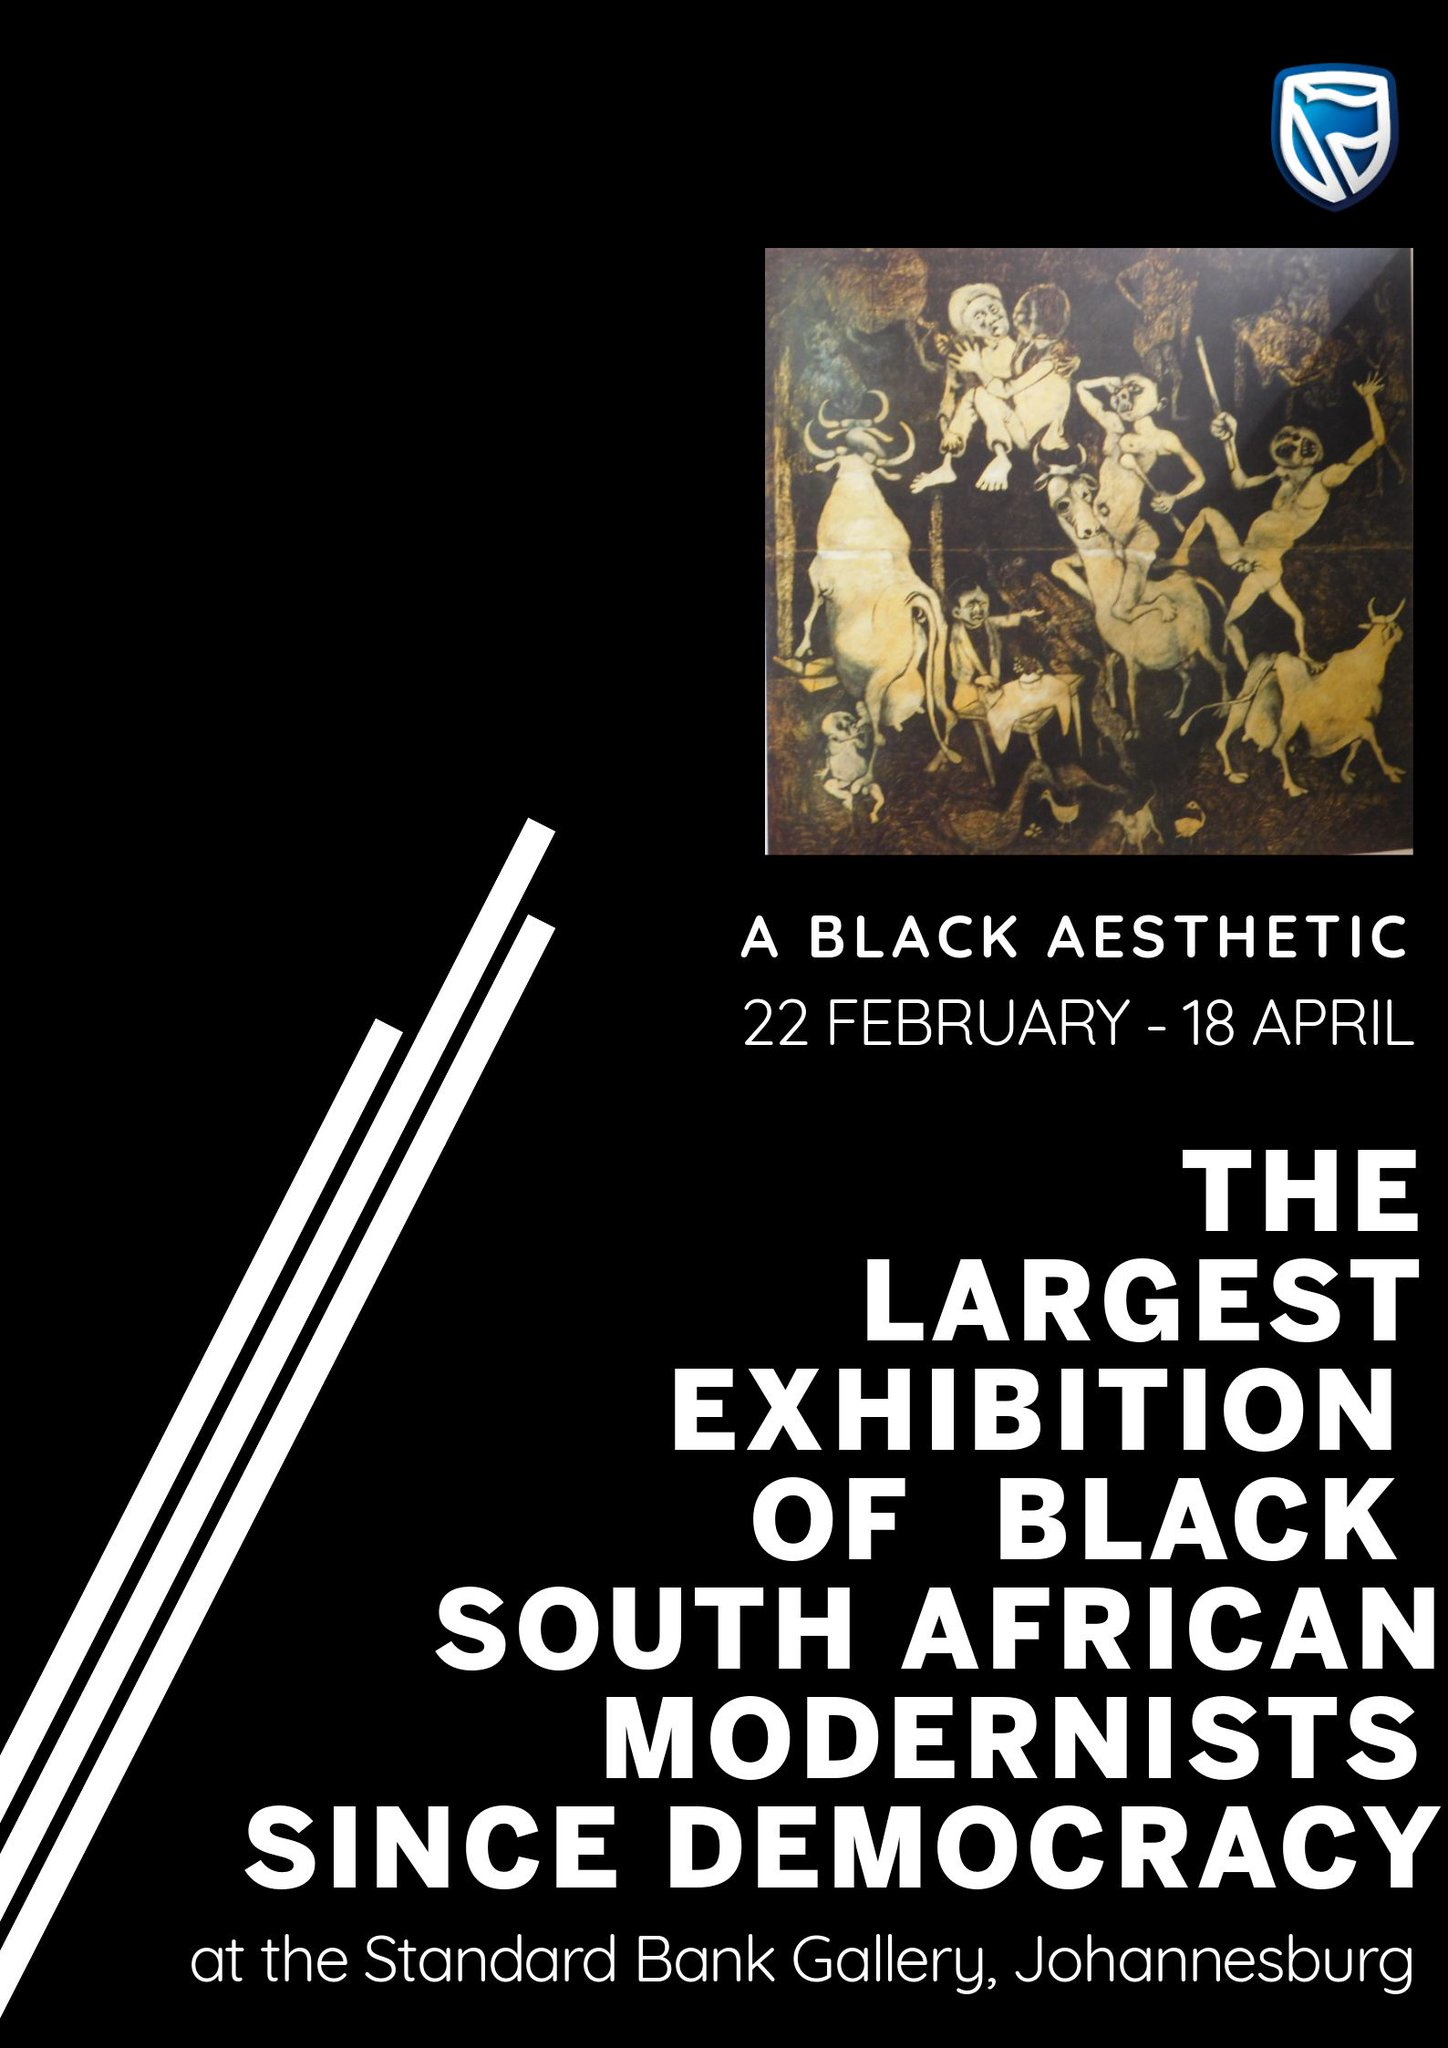 Standard Bank Arts On Twitter Gallery This For Blackhistorymonth We Will Open A Black Aesthetic The Largest Exhibition Of Black South African Modernist Artists Since Democracy Rt This To Support